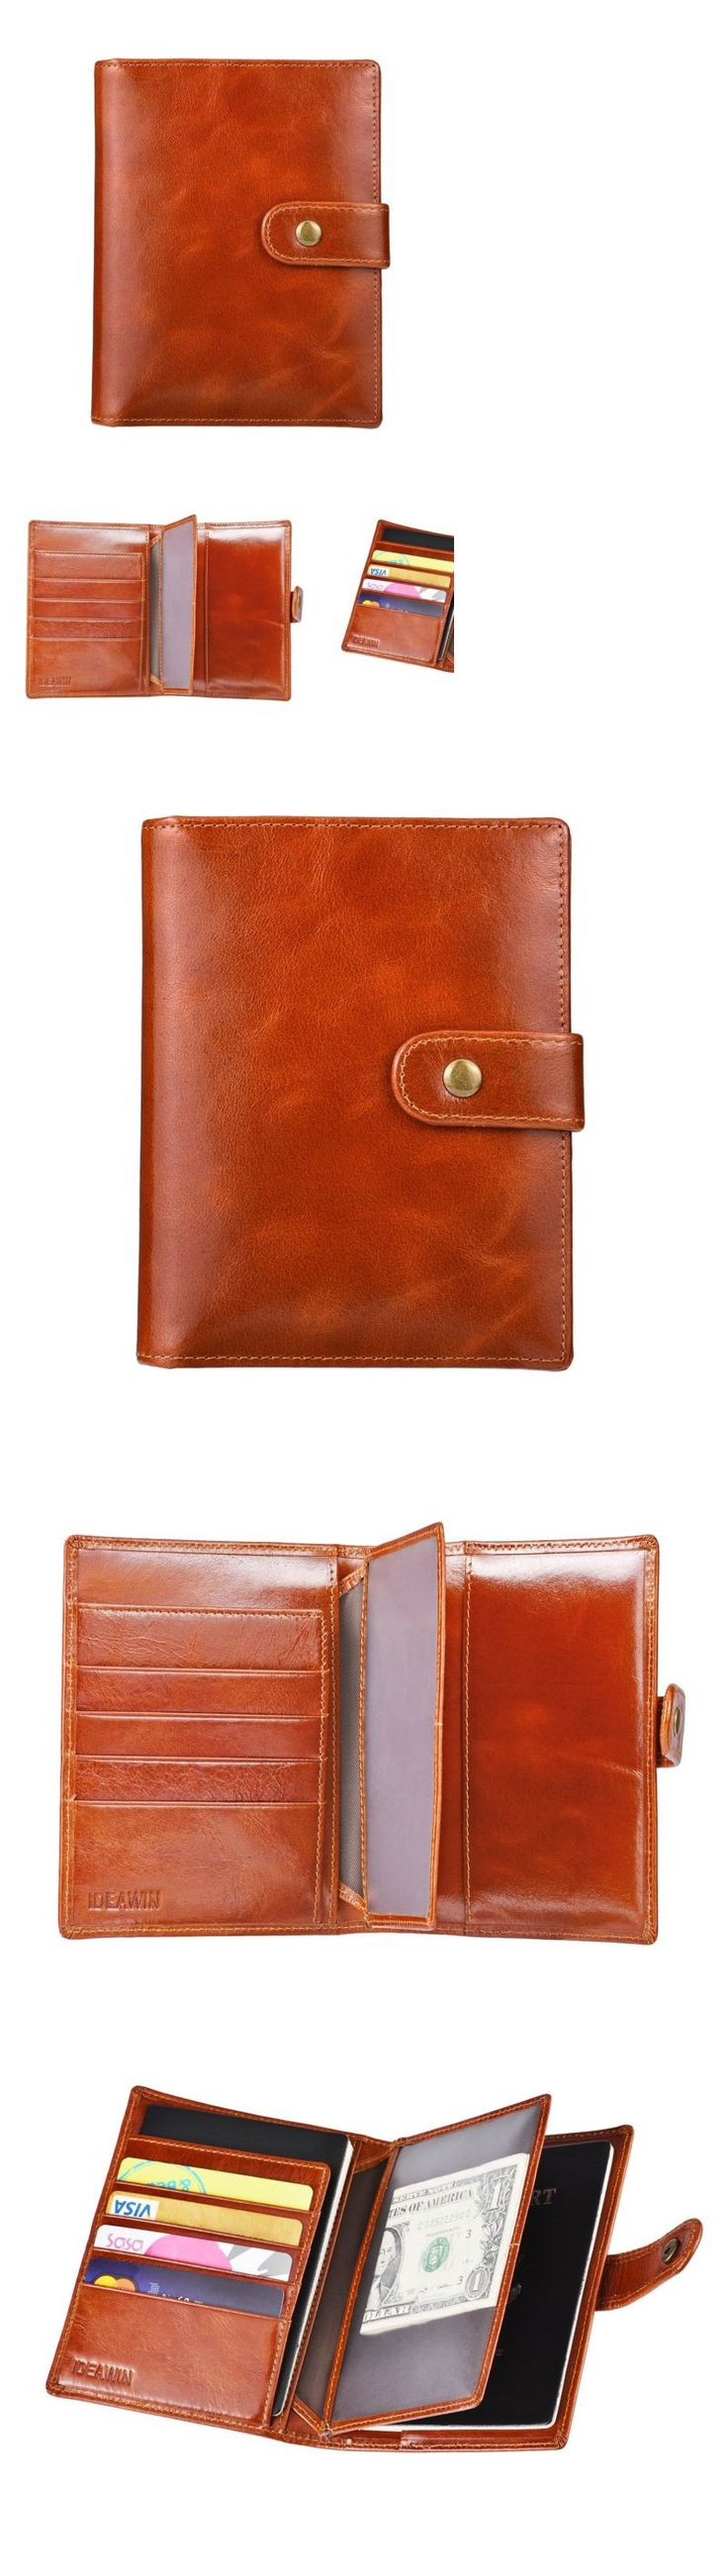 Passport Holders 163584: Ideawin Rfid Travel Wallet Case Genuine Leather Trifold 2 Passport Holder Wallet -> BUY IT NOW ONLY: $38.93 on eBay!